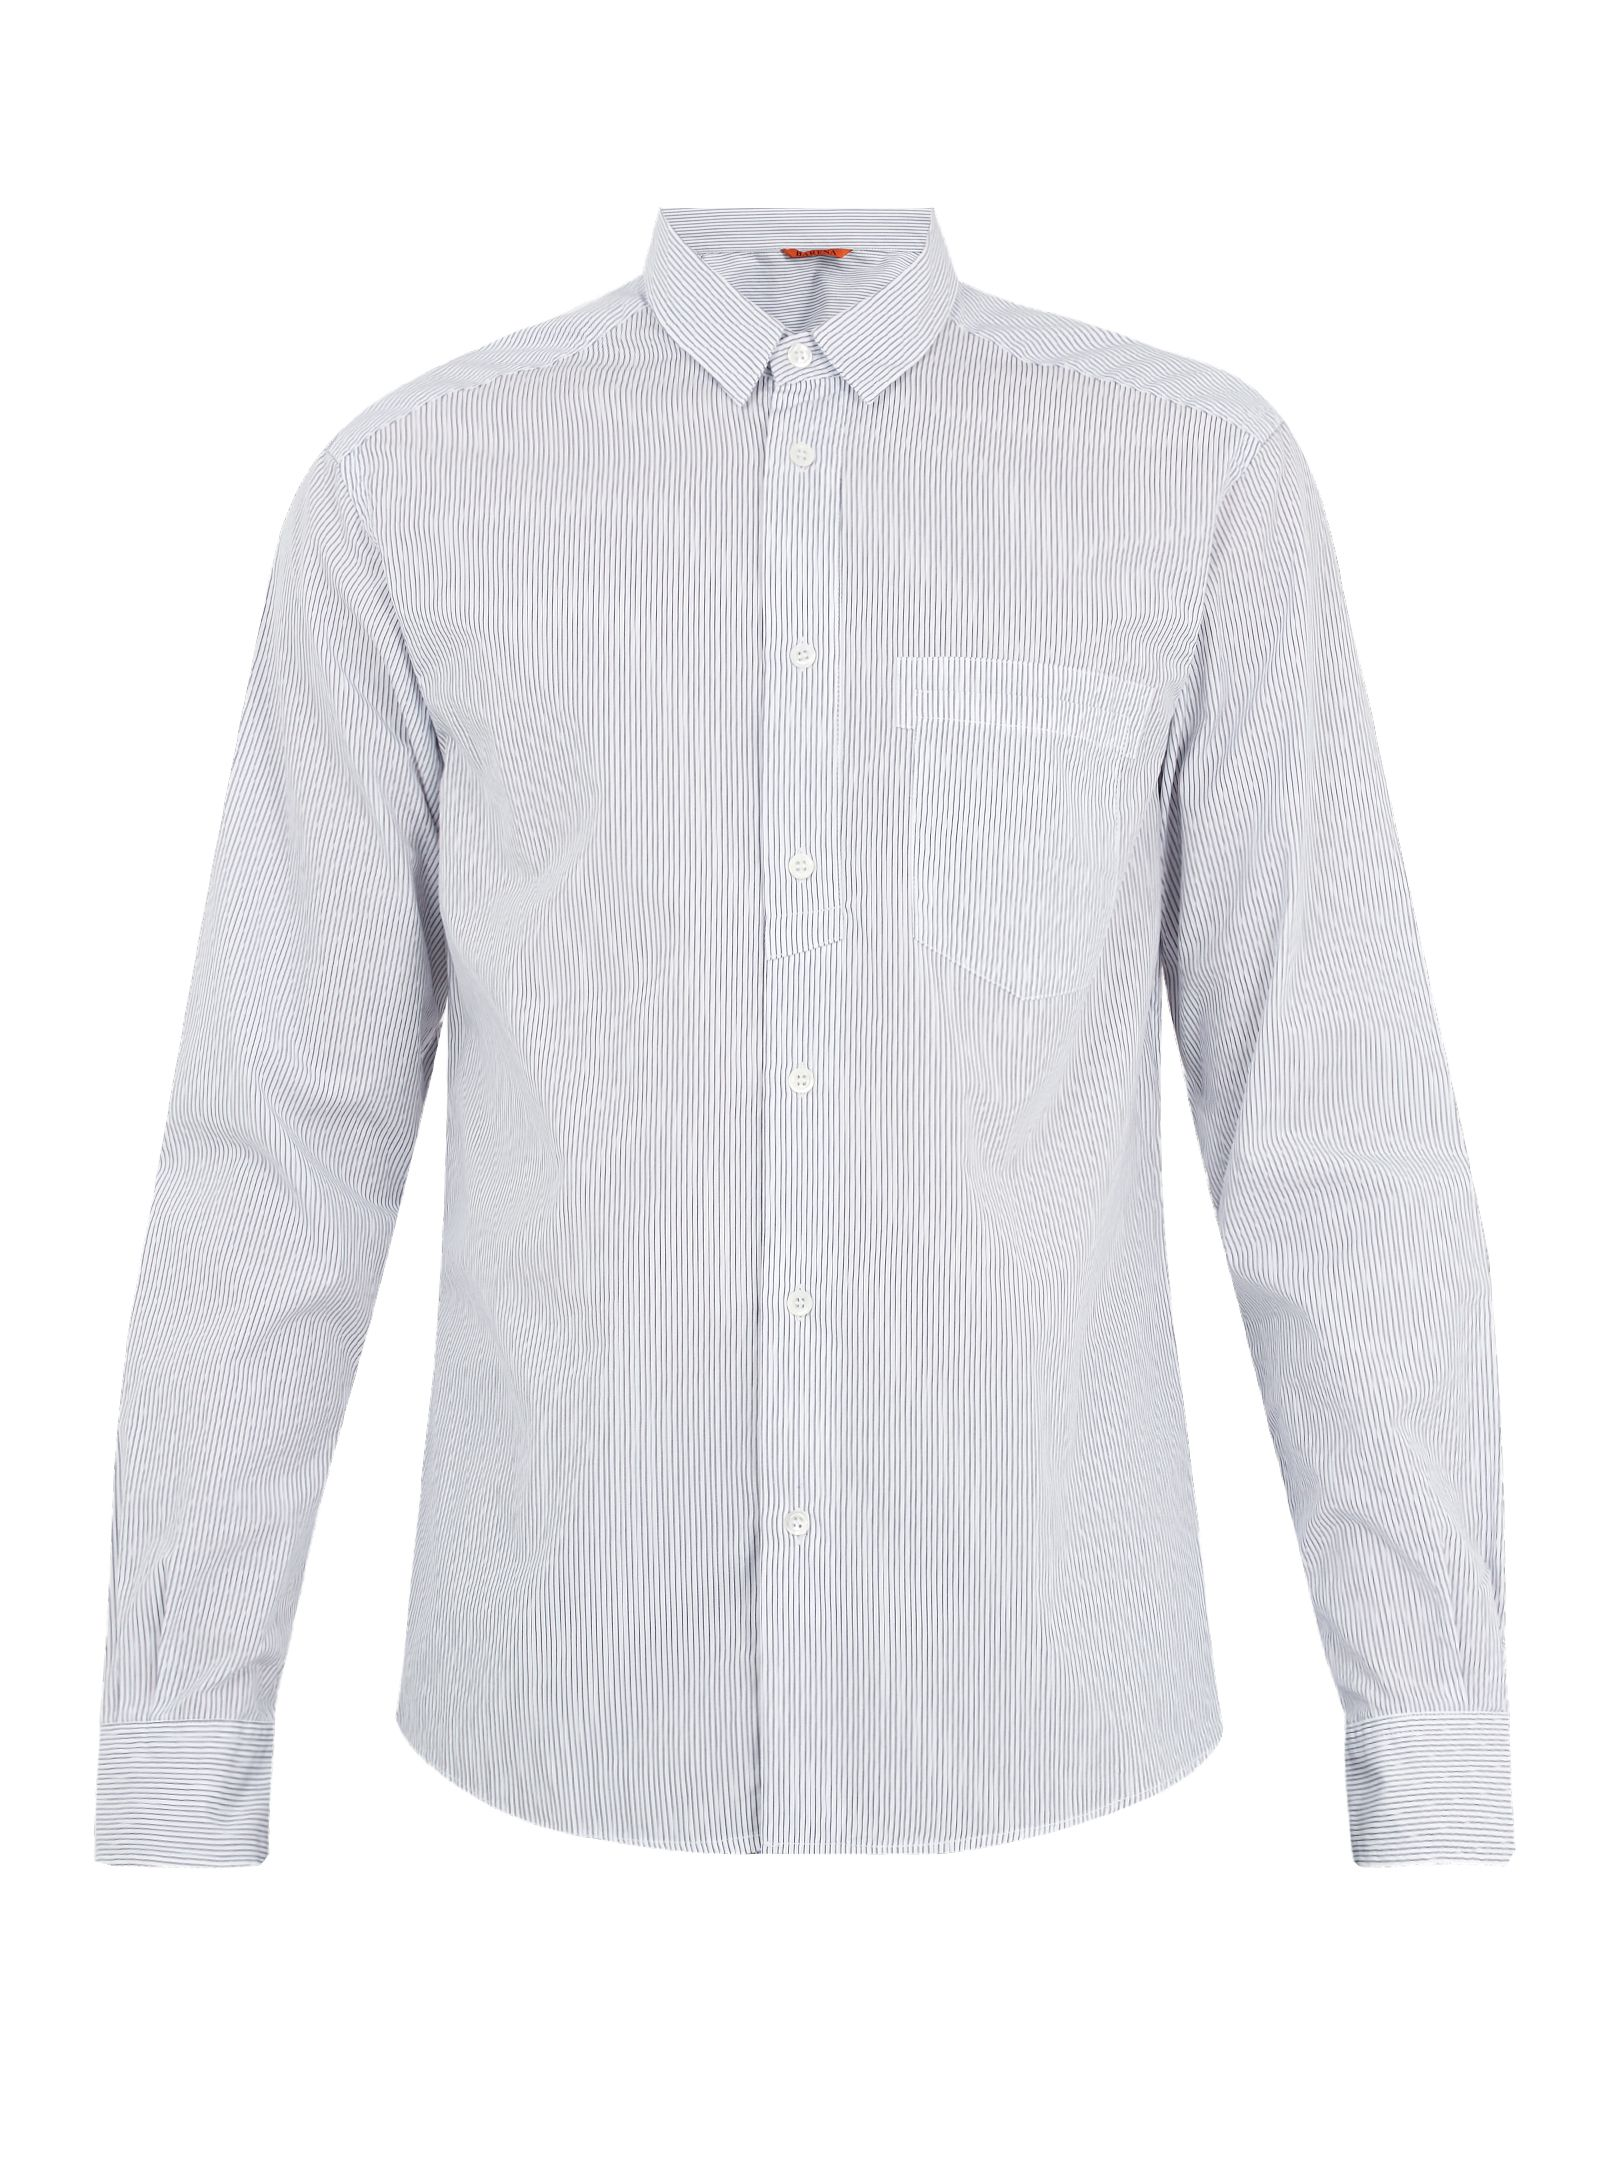 Cheap Price Wholesale Cotton-poplin Shirt Barena Fast Delivery Newest QEh9o3lD5d